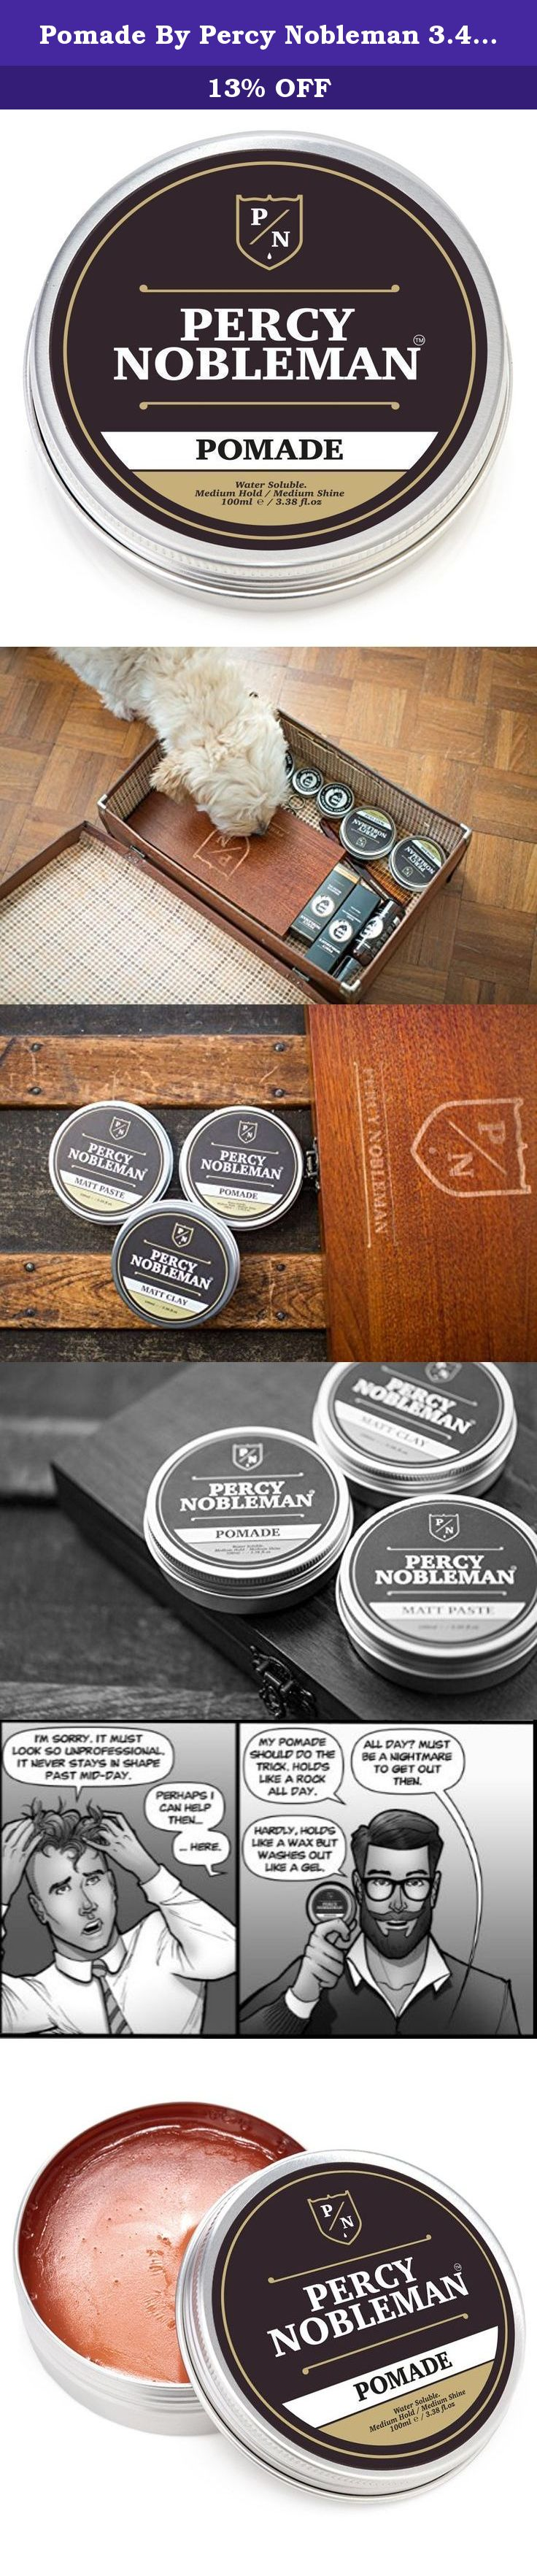 Pomade By Percy Nobleman 34 Ounce A British Male Grooming Brand Spider Sleek Stylish